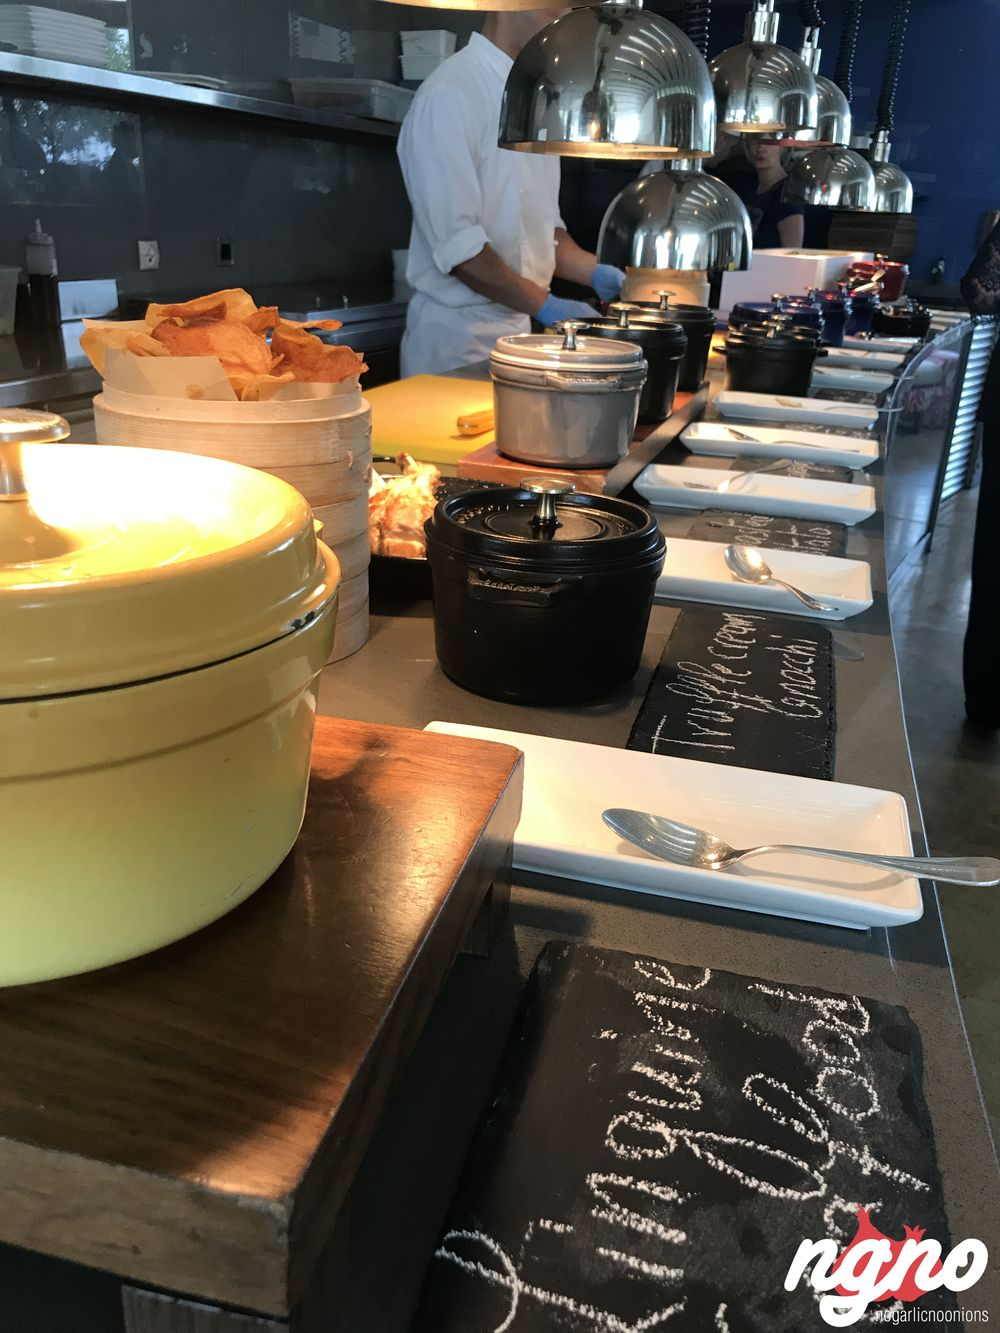 le-gray-sunday-brunch-beirut122017-05-02-01-55-43